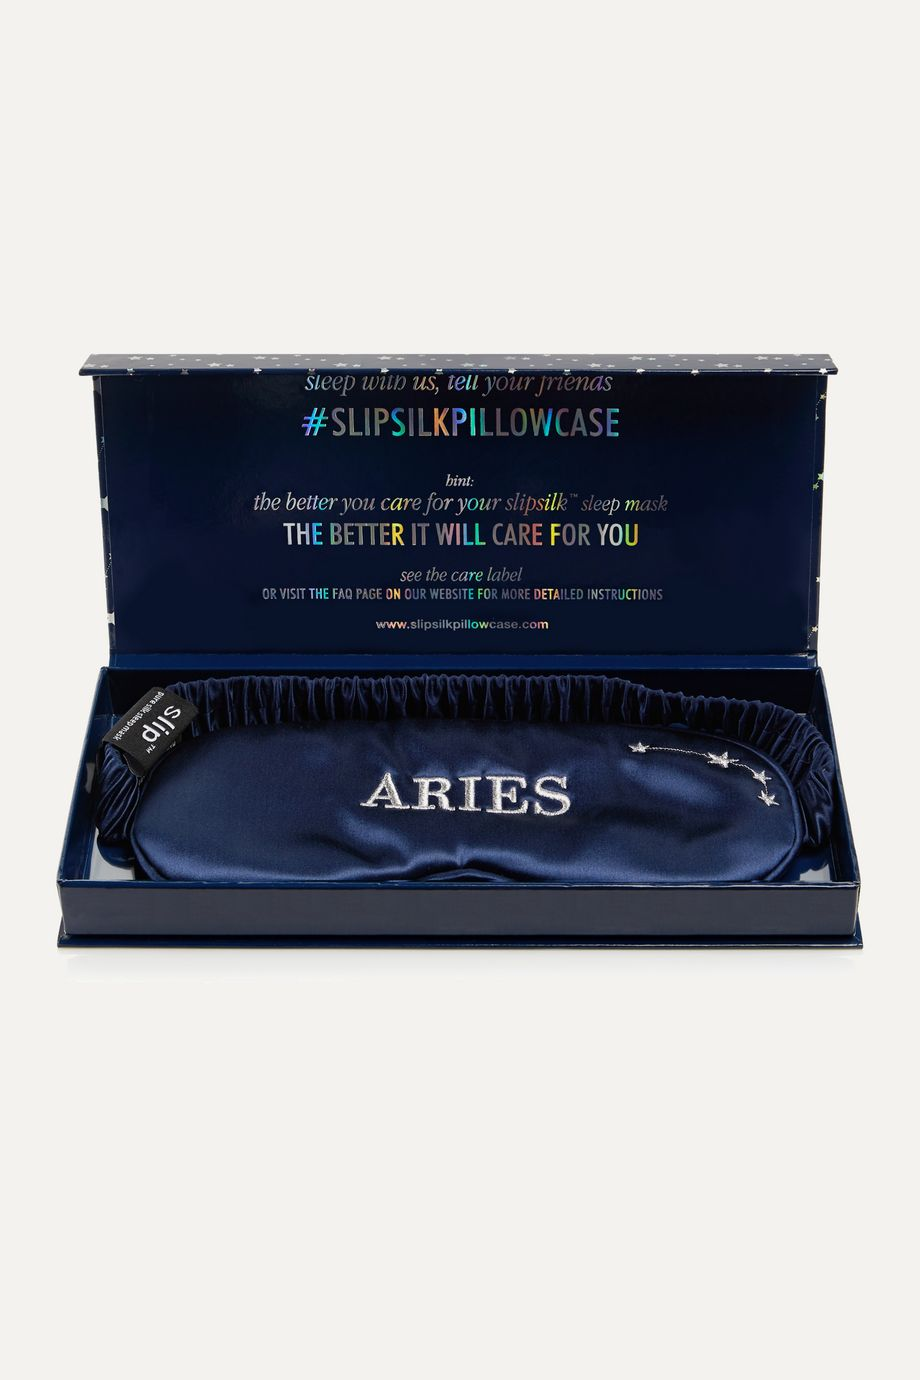 Slip Aries embroidered mulberry silk eye mask